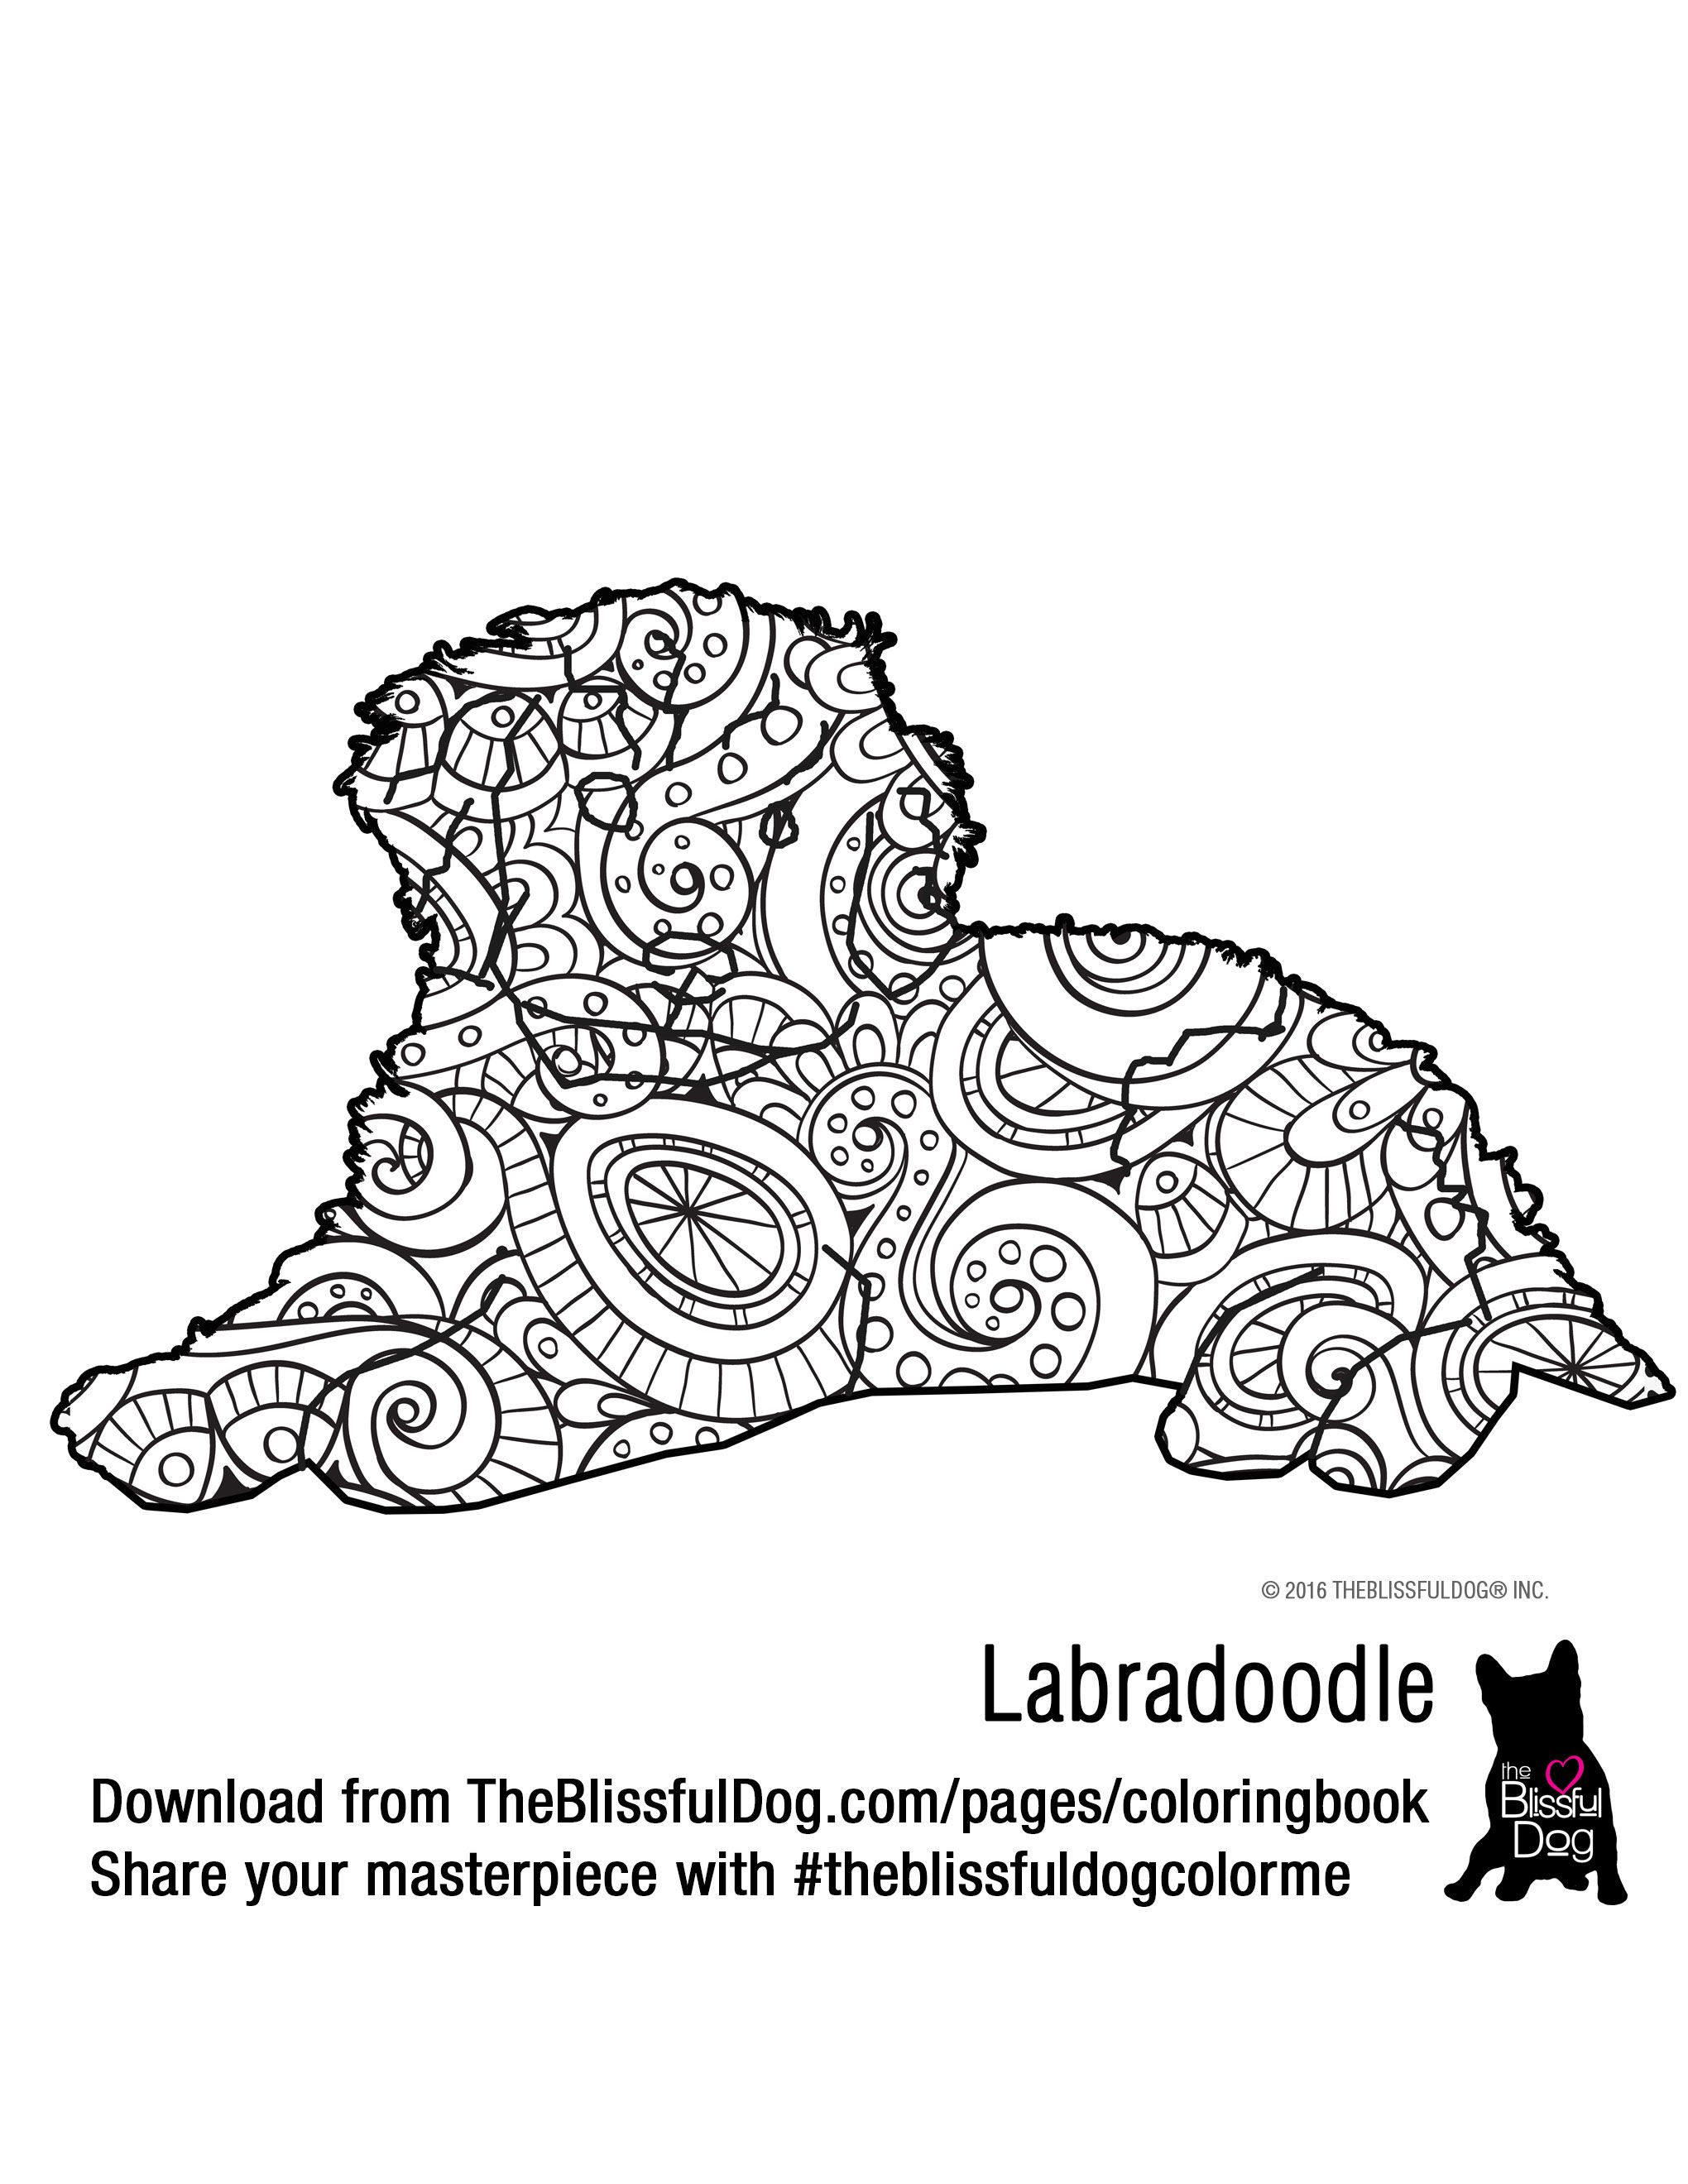 Color This Labradoodle Puppy FUN Get All 60 Dog Breeds And Them